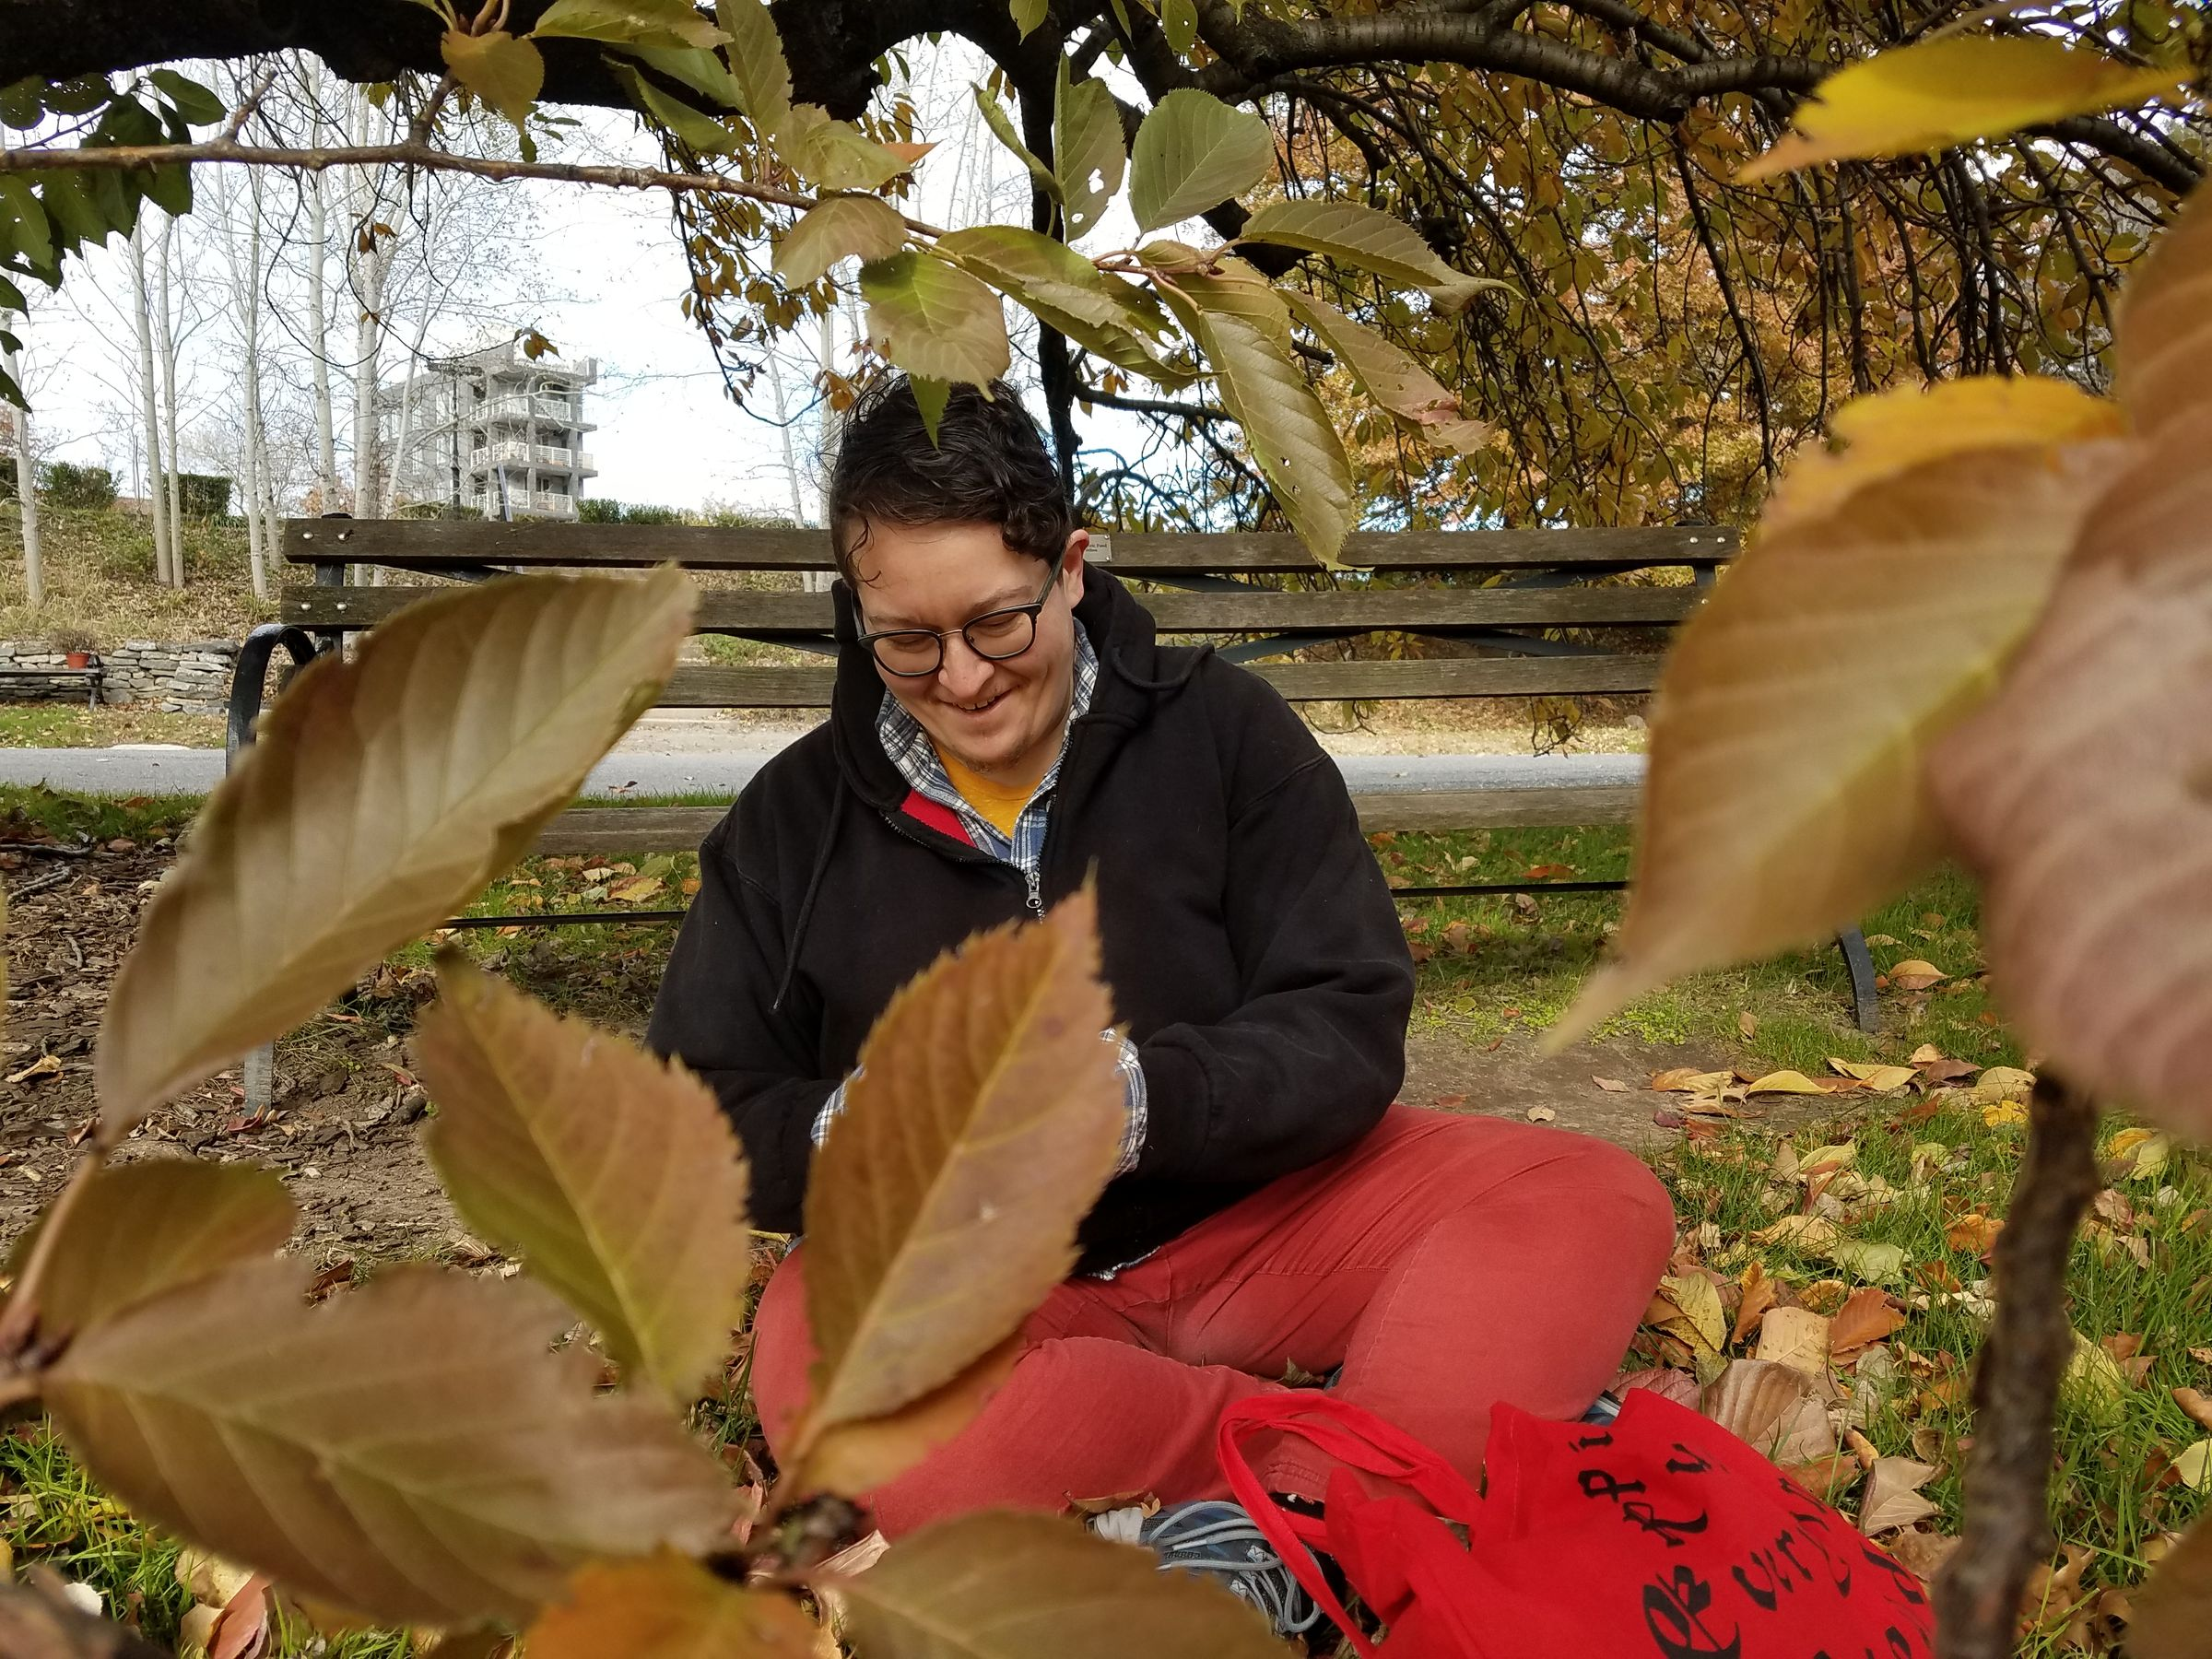 Photo, taken through some leafy branches, of a person sitting cross-legged on the ground under a drooping cherry tree branch. They are putting leaves into a red tote back at their feet.